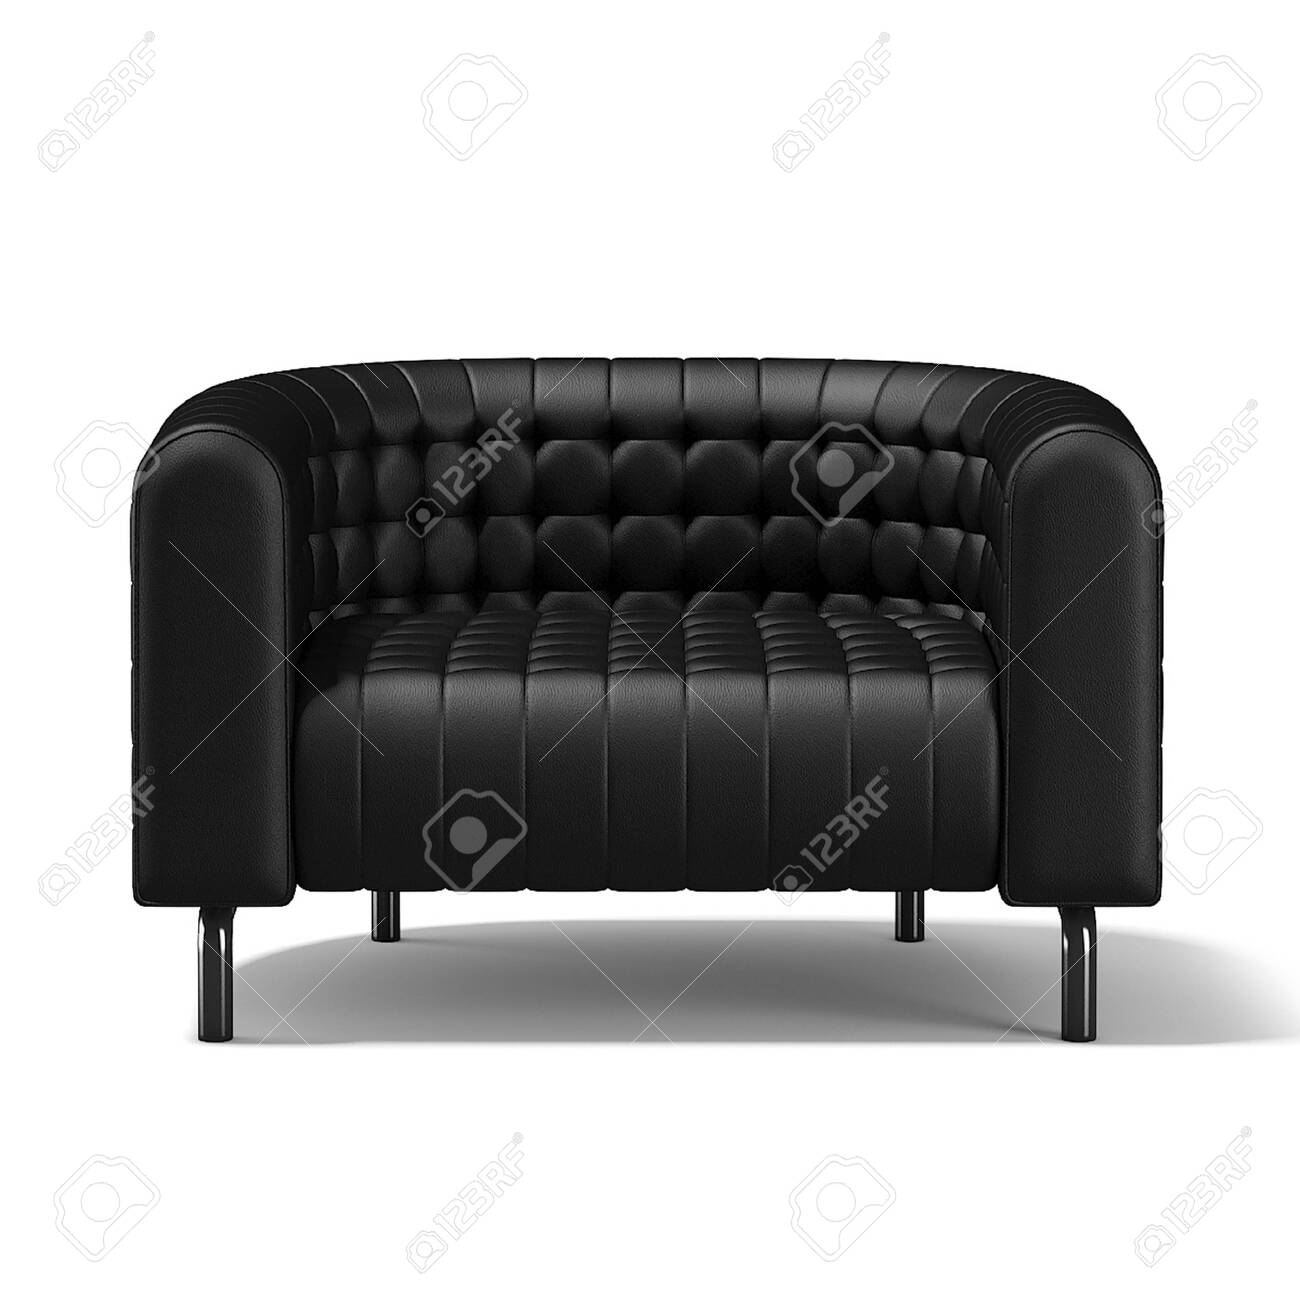 - Modern Small Black Leather Sofa On White Background. 3D Rendering